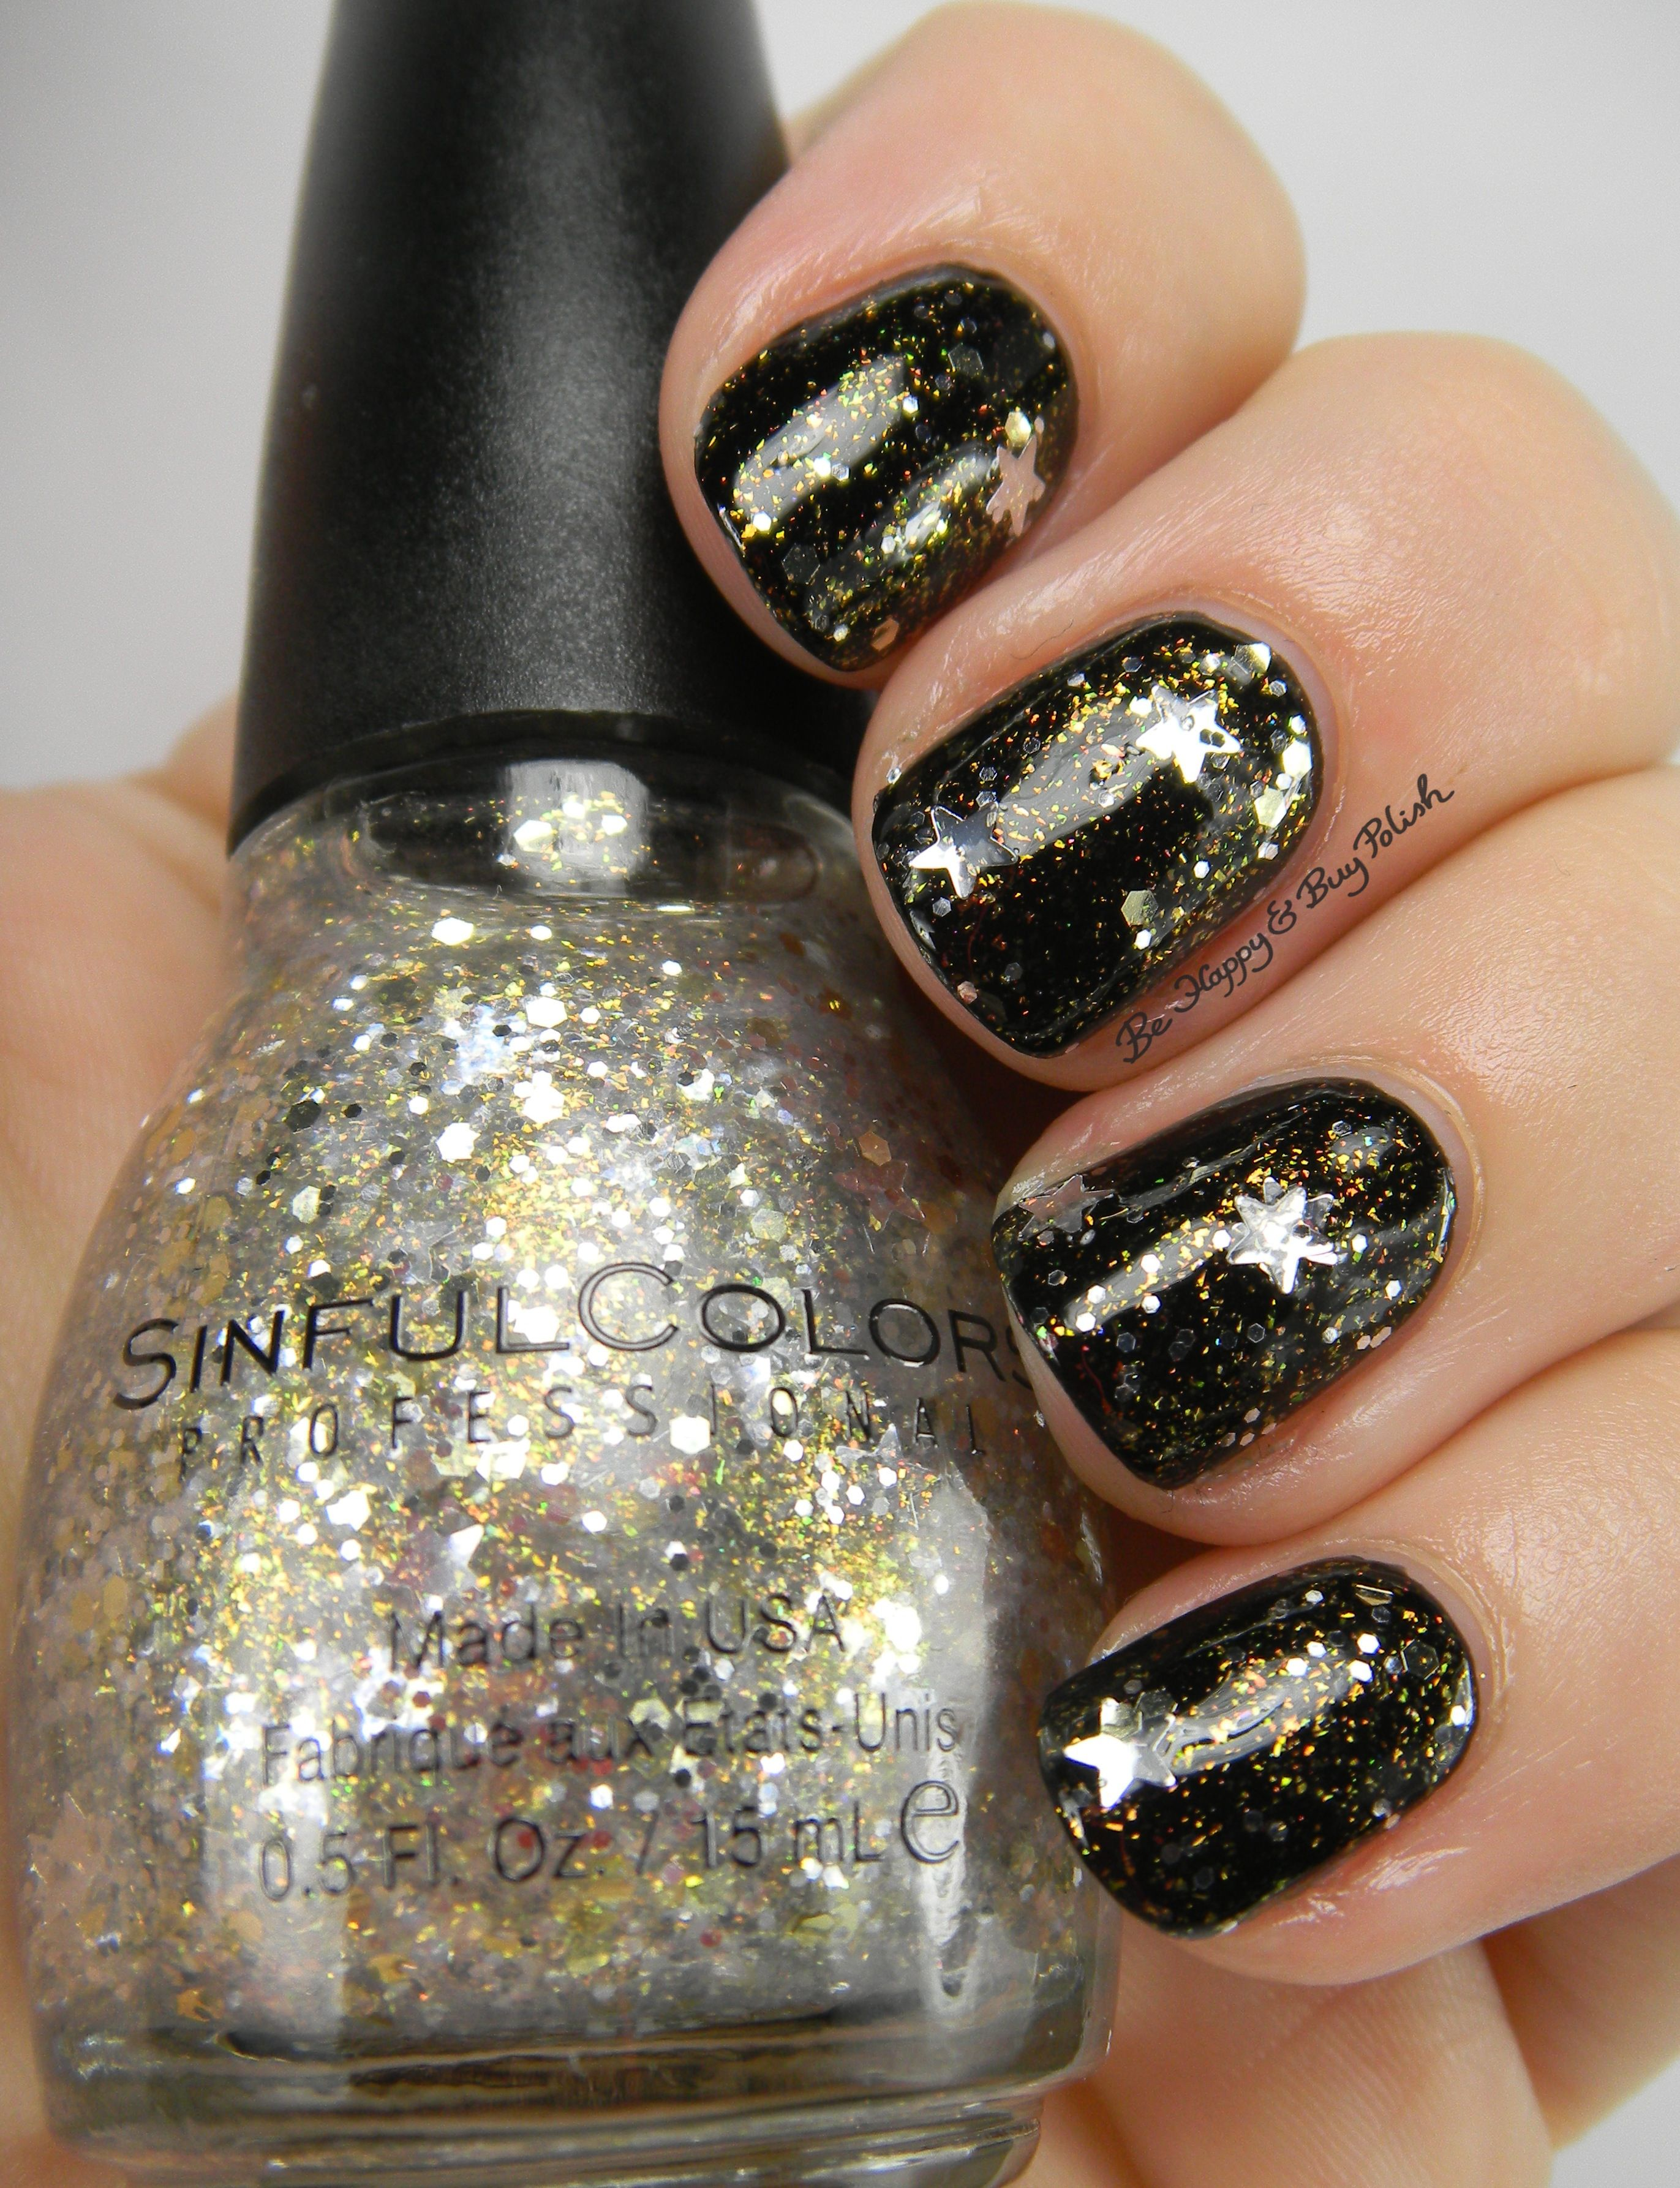 Sinful Colors Star Studded over Black on Black   Be Happy And Buy ...